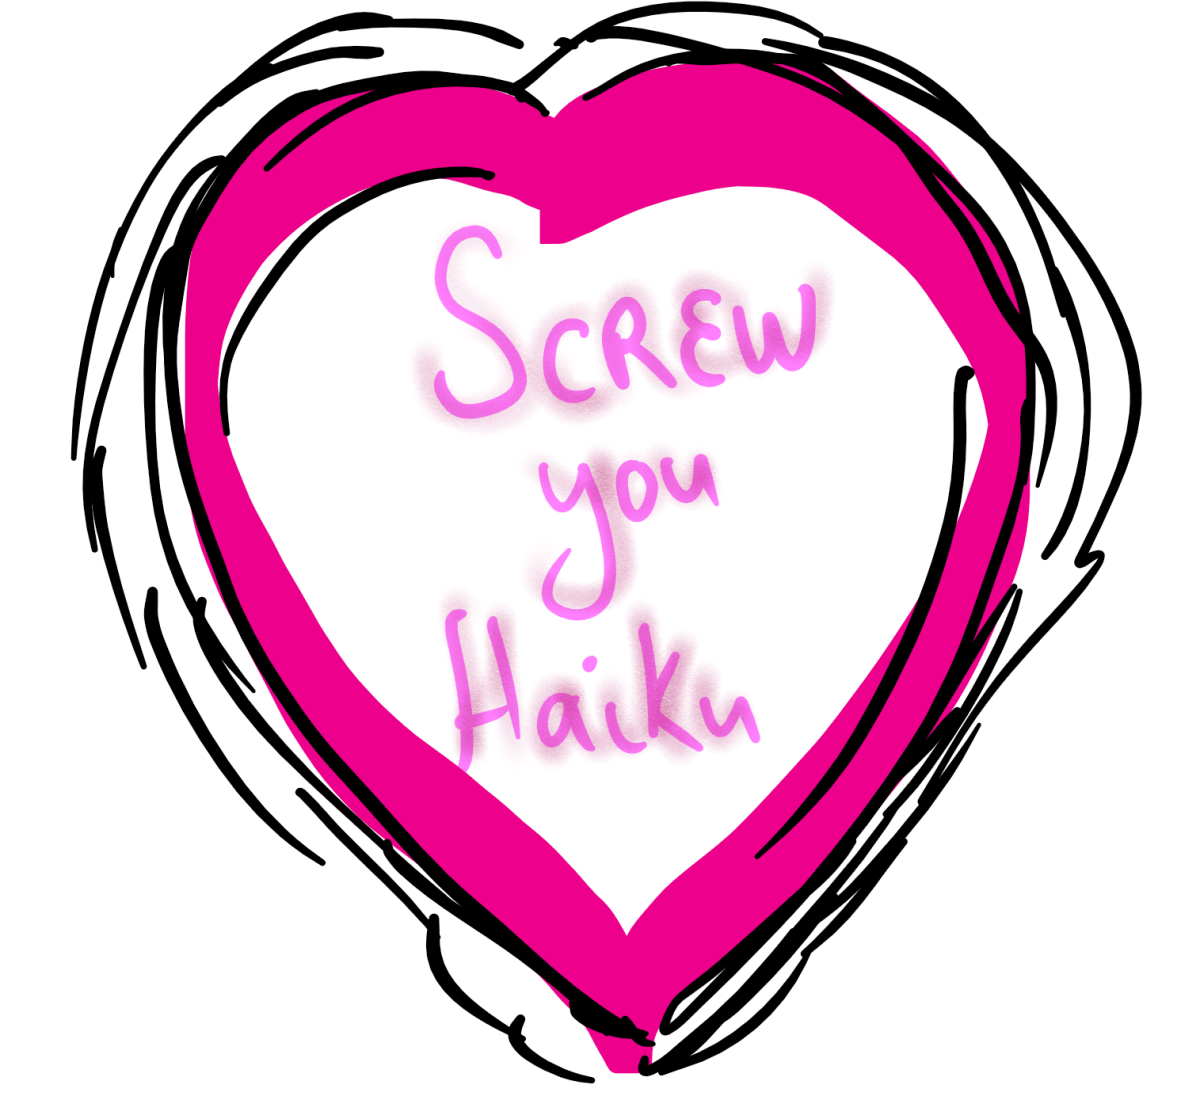 Screw you valentine haiku